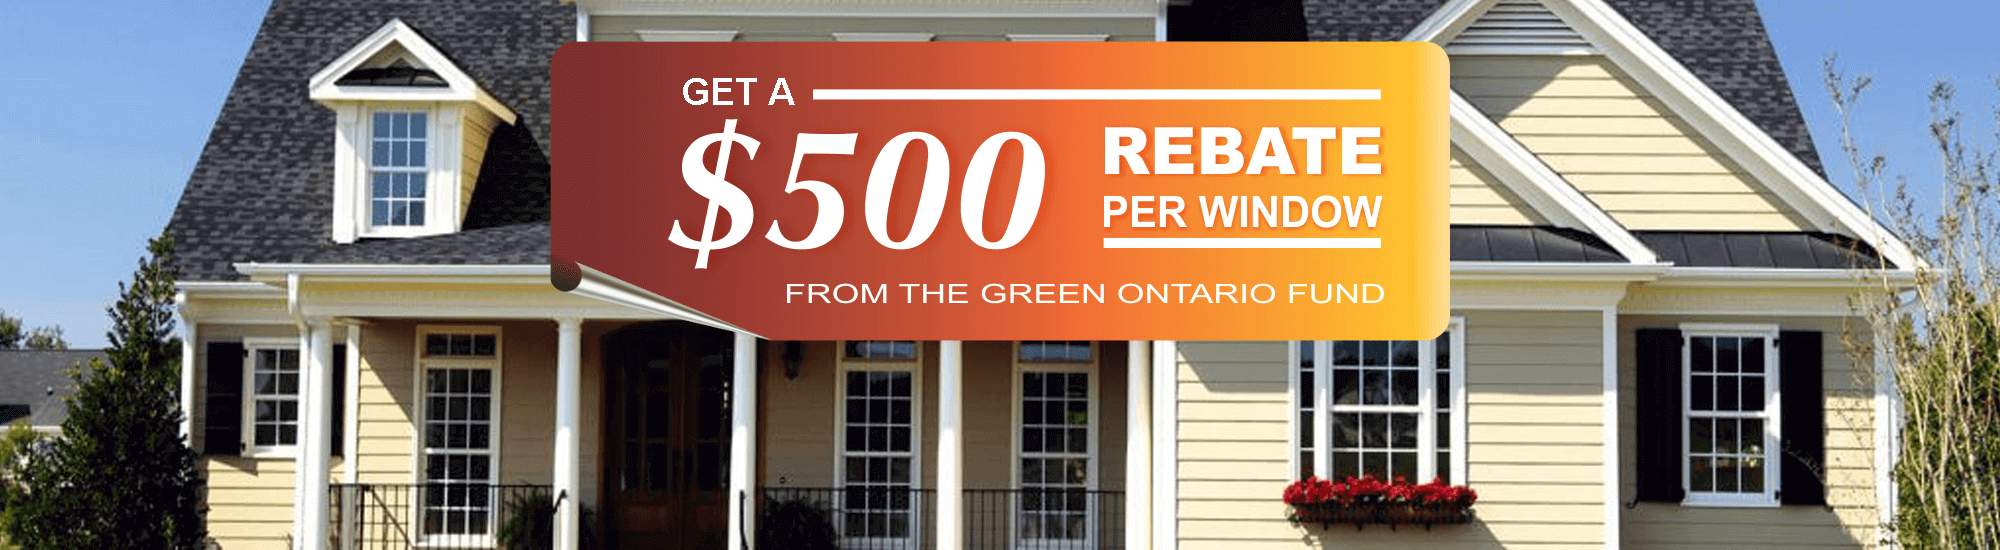 Green Ontario $500 Rebate